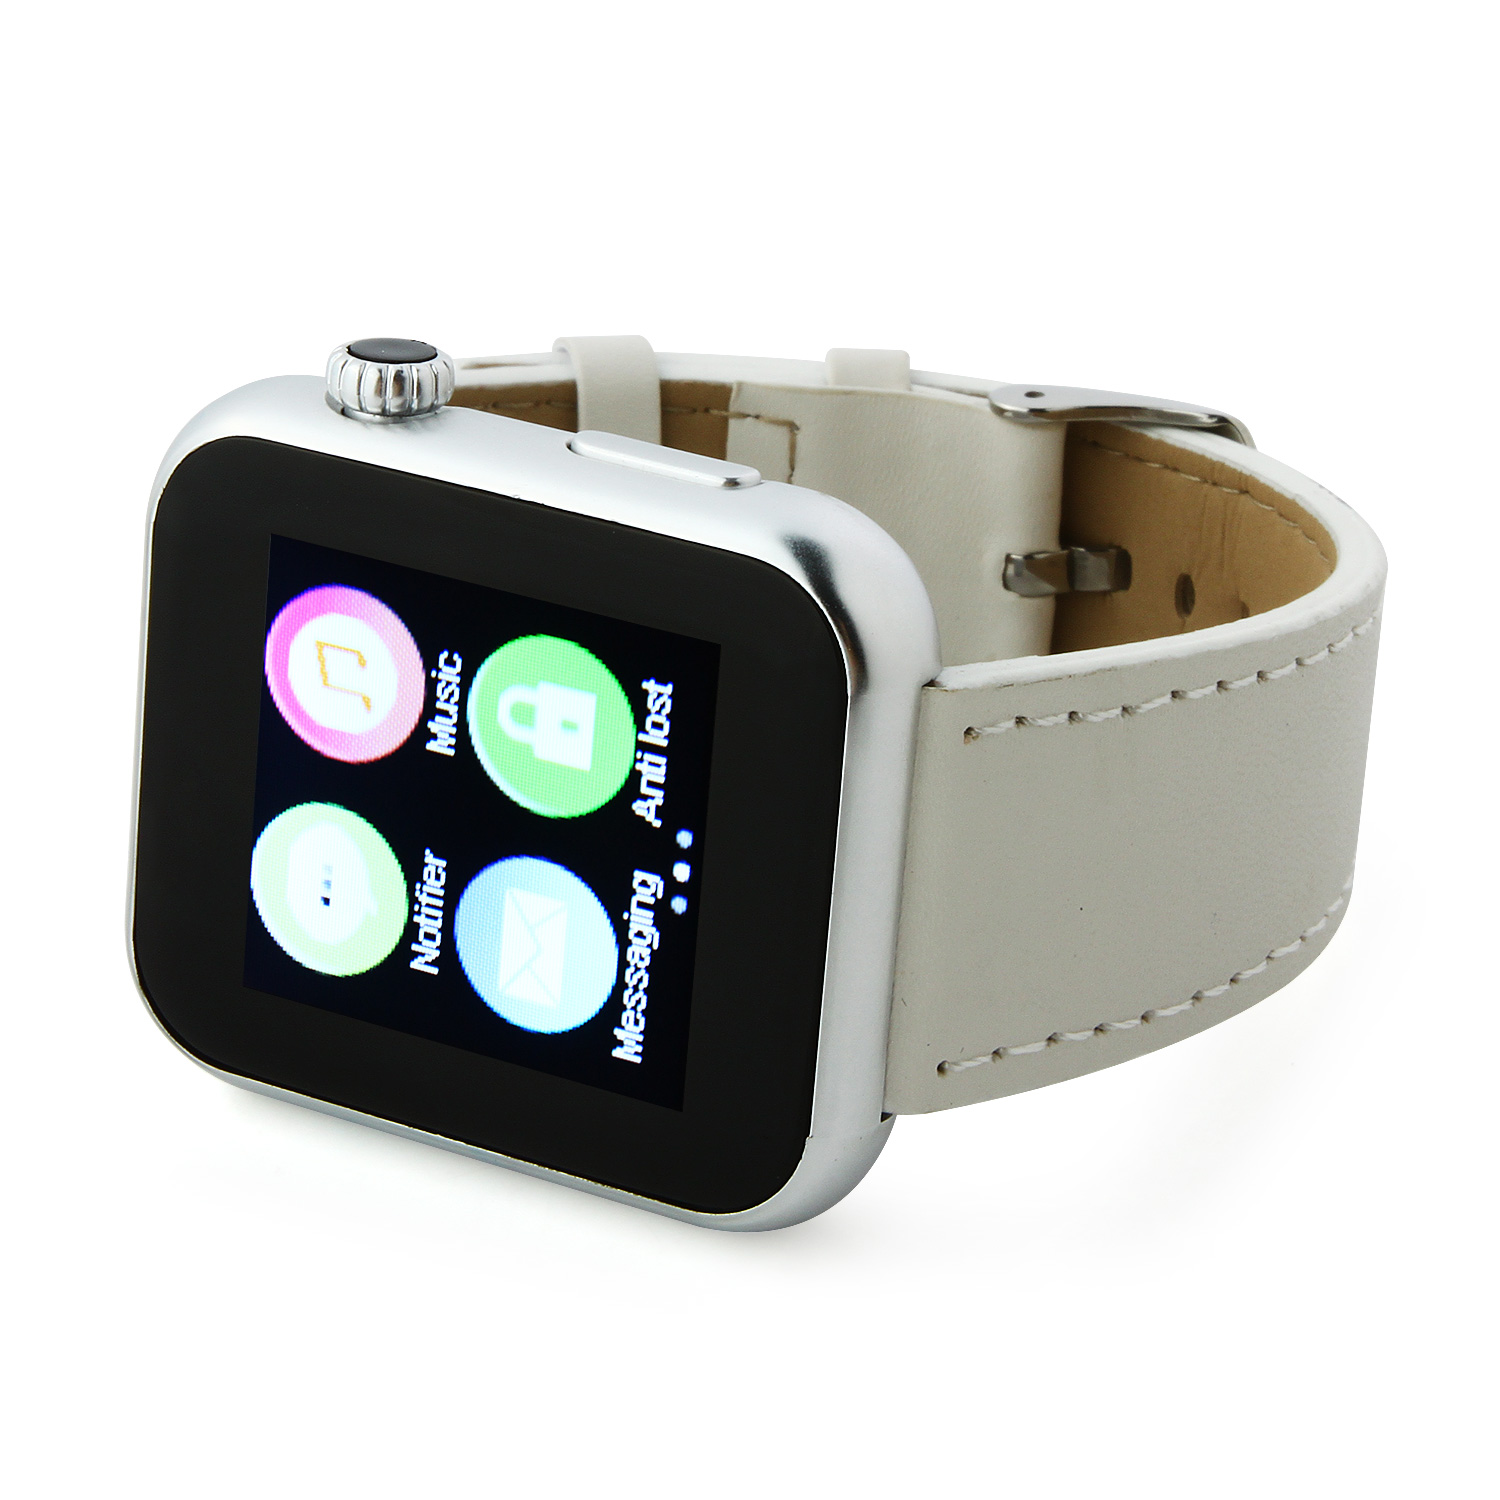 Atongm AW08 Bluetooth Watch Smart Watch with Call MMS Pedometer Anti-lost White